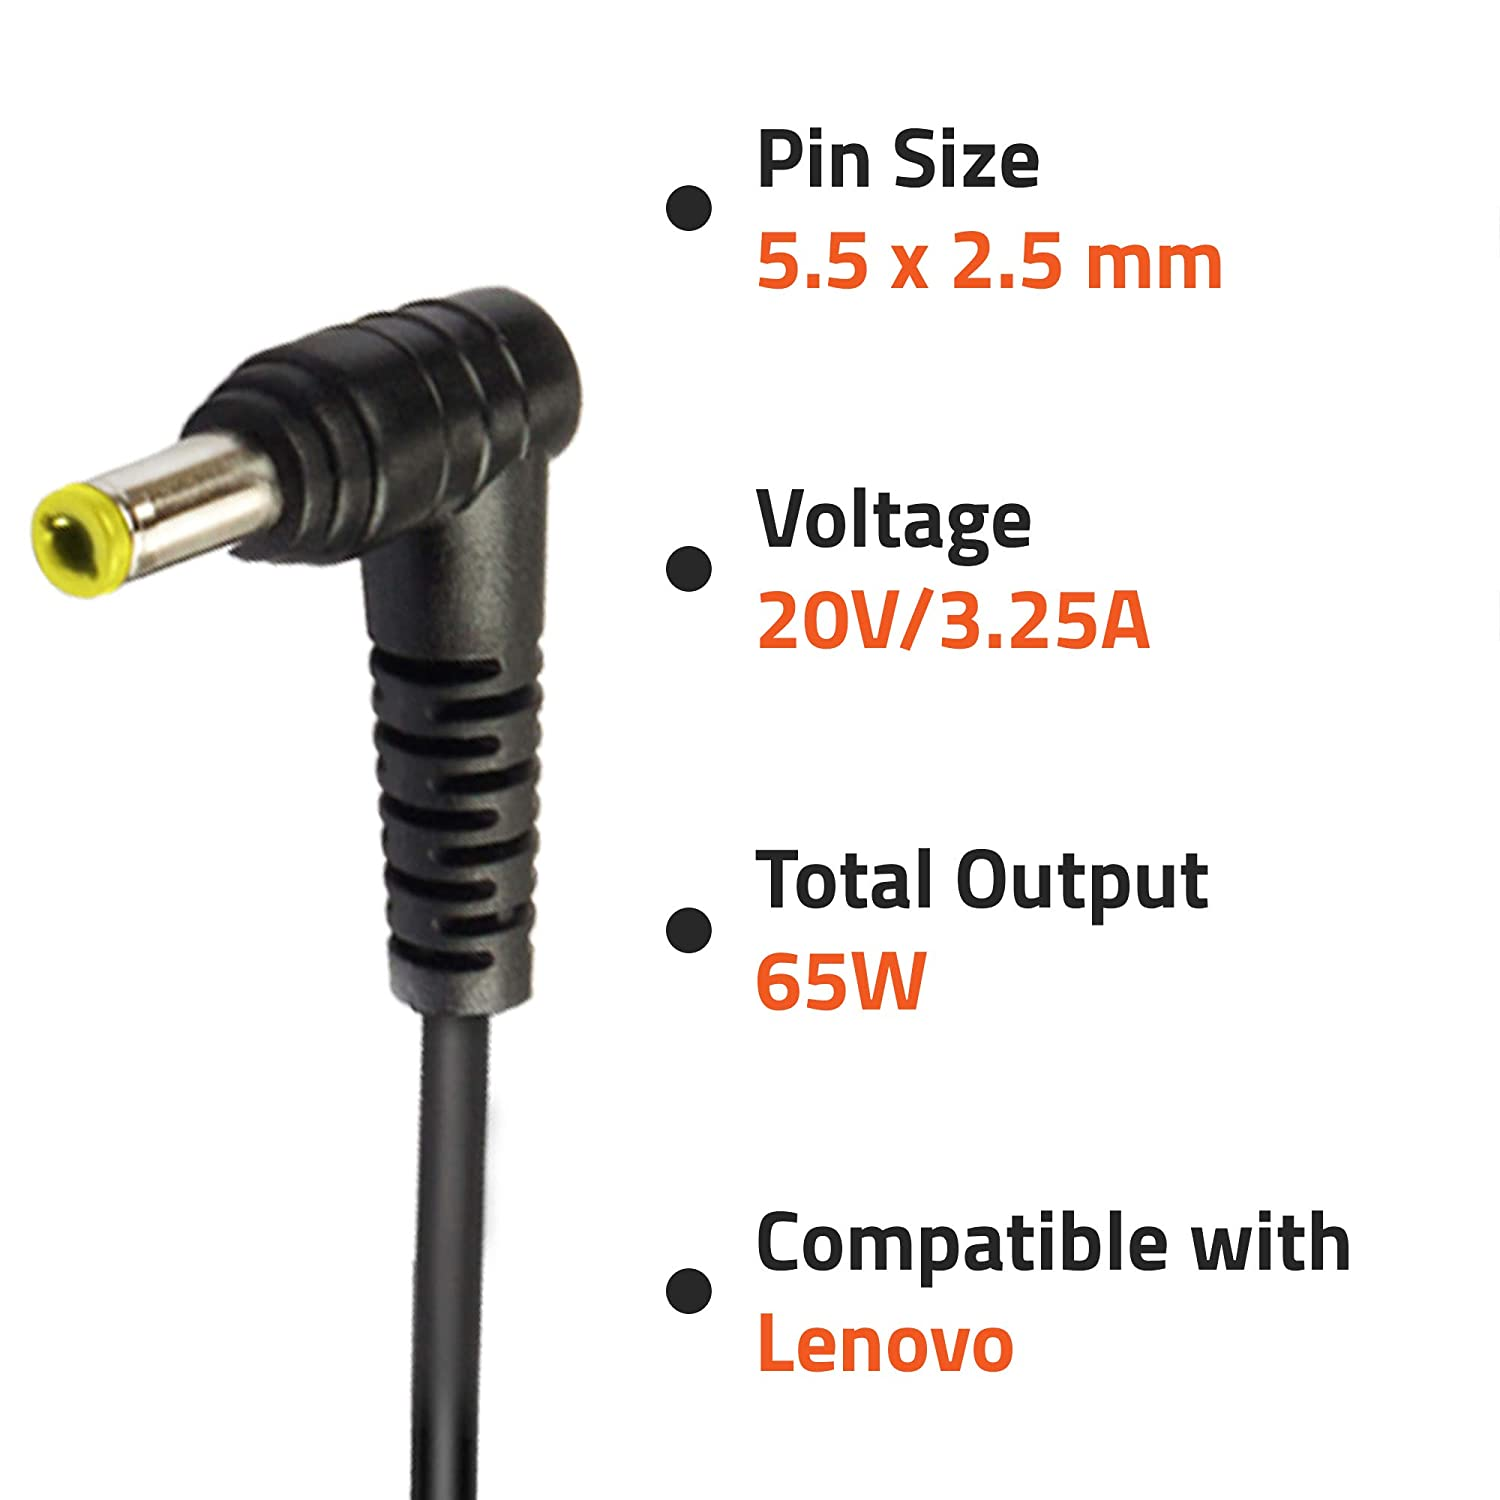 Artis AR0504 65Watt Laptop Charger/Adapter With Power Cord Compatible With Lenovo Laptops (20V/3.25A, 65Watt) (Pin Size: 5.5mm X 2.5mm)